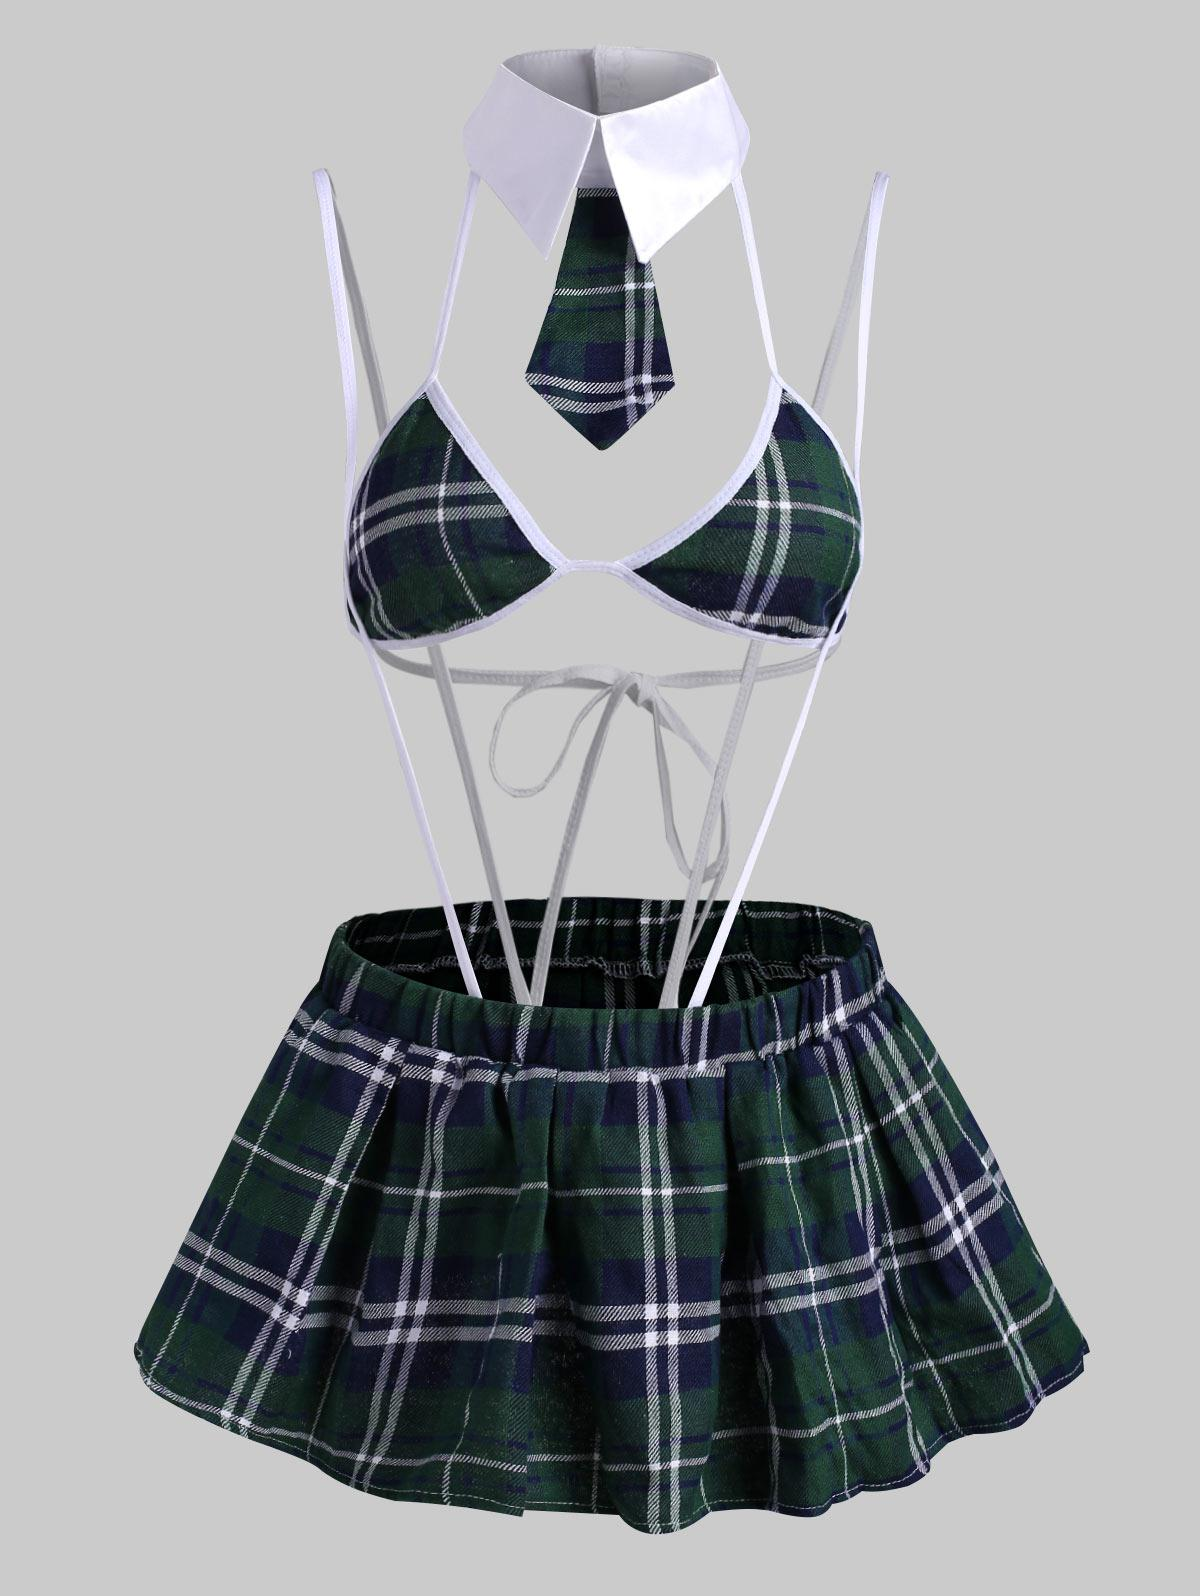 Plaid Binding Suspender Lingerie Bralette Set with Skirt